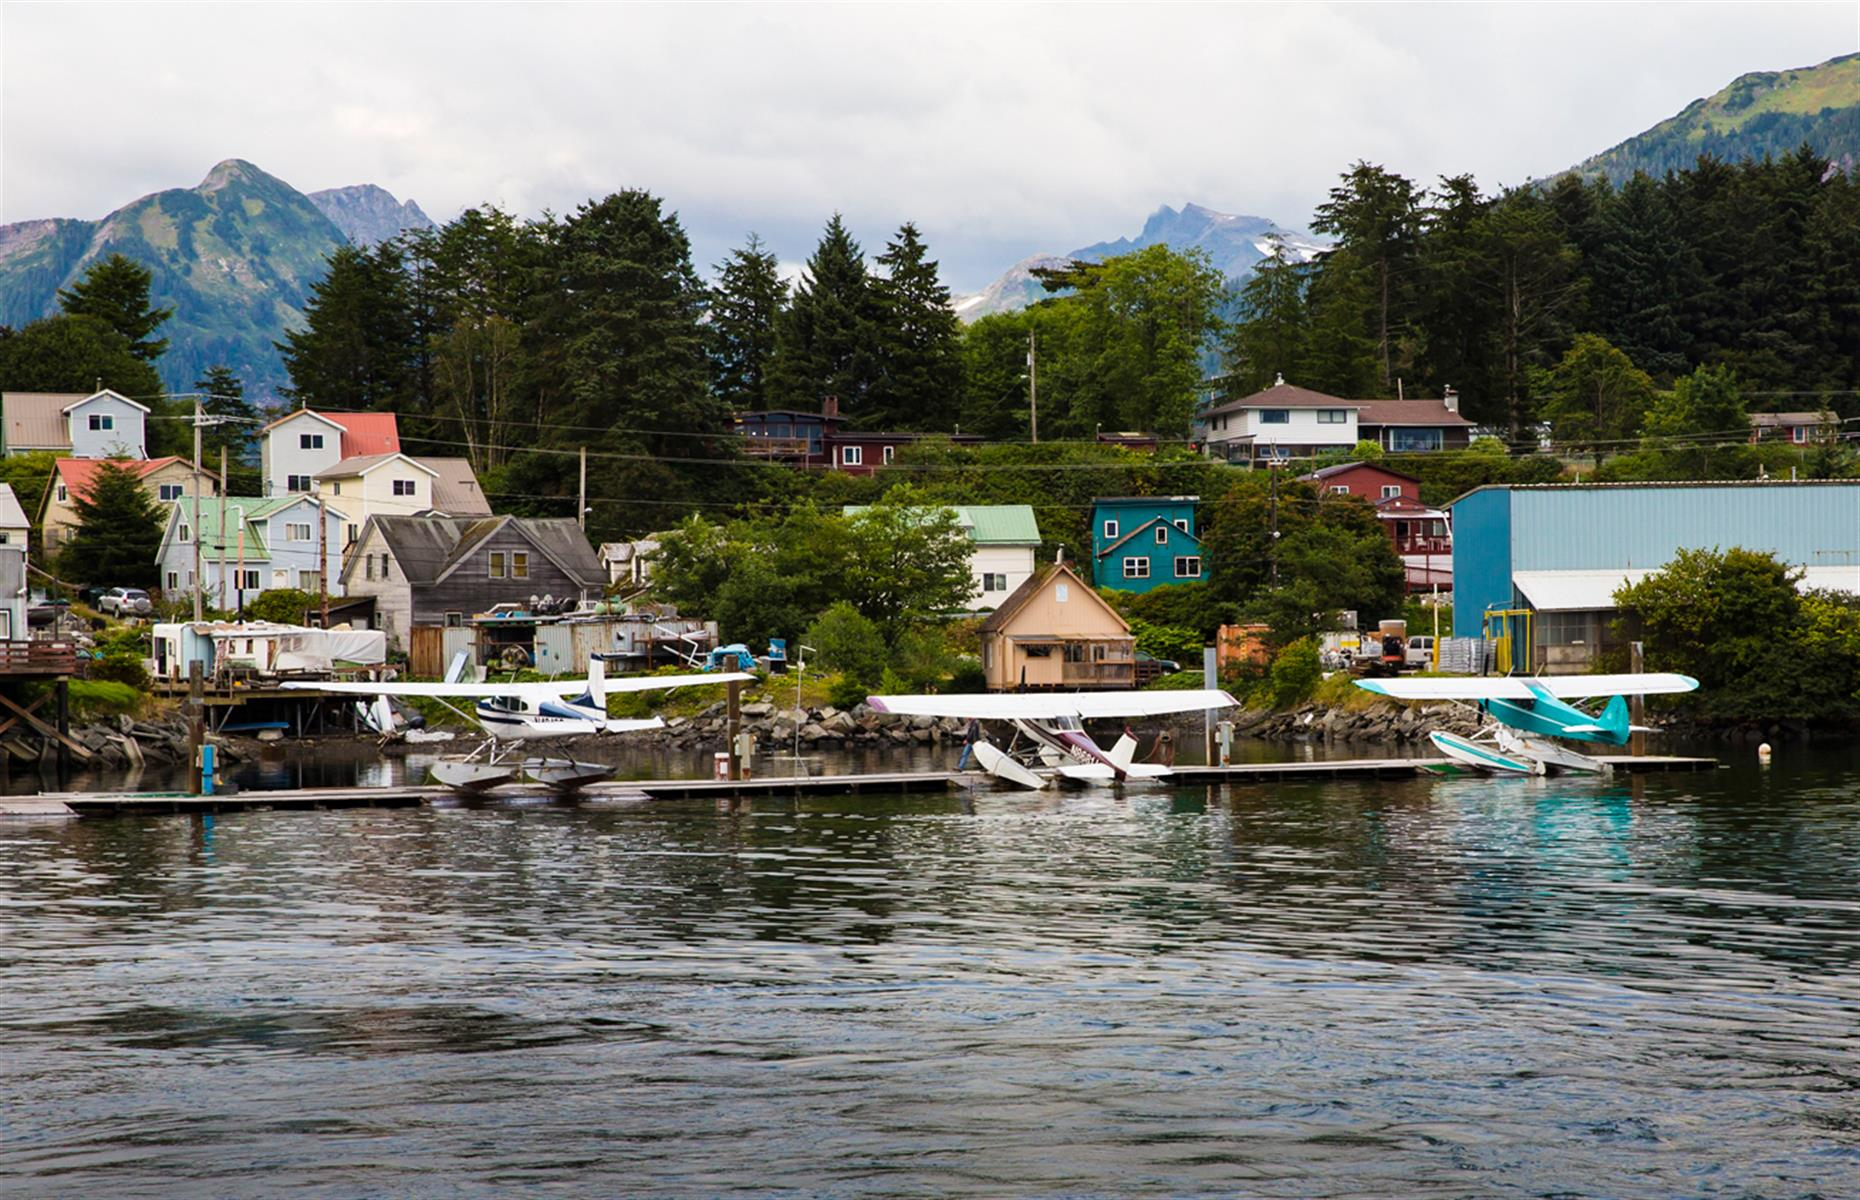 Slide 27 of 35: Sitka, located on Baranof Island's west shore in the southern tip of Alaska, is one of the few remaining places that nods at the state's Russian influence. In the mid-1700s, the Russians arrived in Alaska and in 1804, they attacked a Tlingit fort and Sitka became America's Russian capital four years later. Today, it's a patchwork of pastel-colored buildings, reminders of Russian history and culture – such as St Michael's Russian Orthodox Cathedral – and stunning views across the mountains.